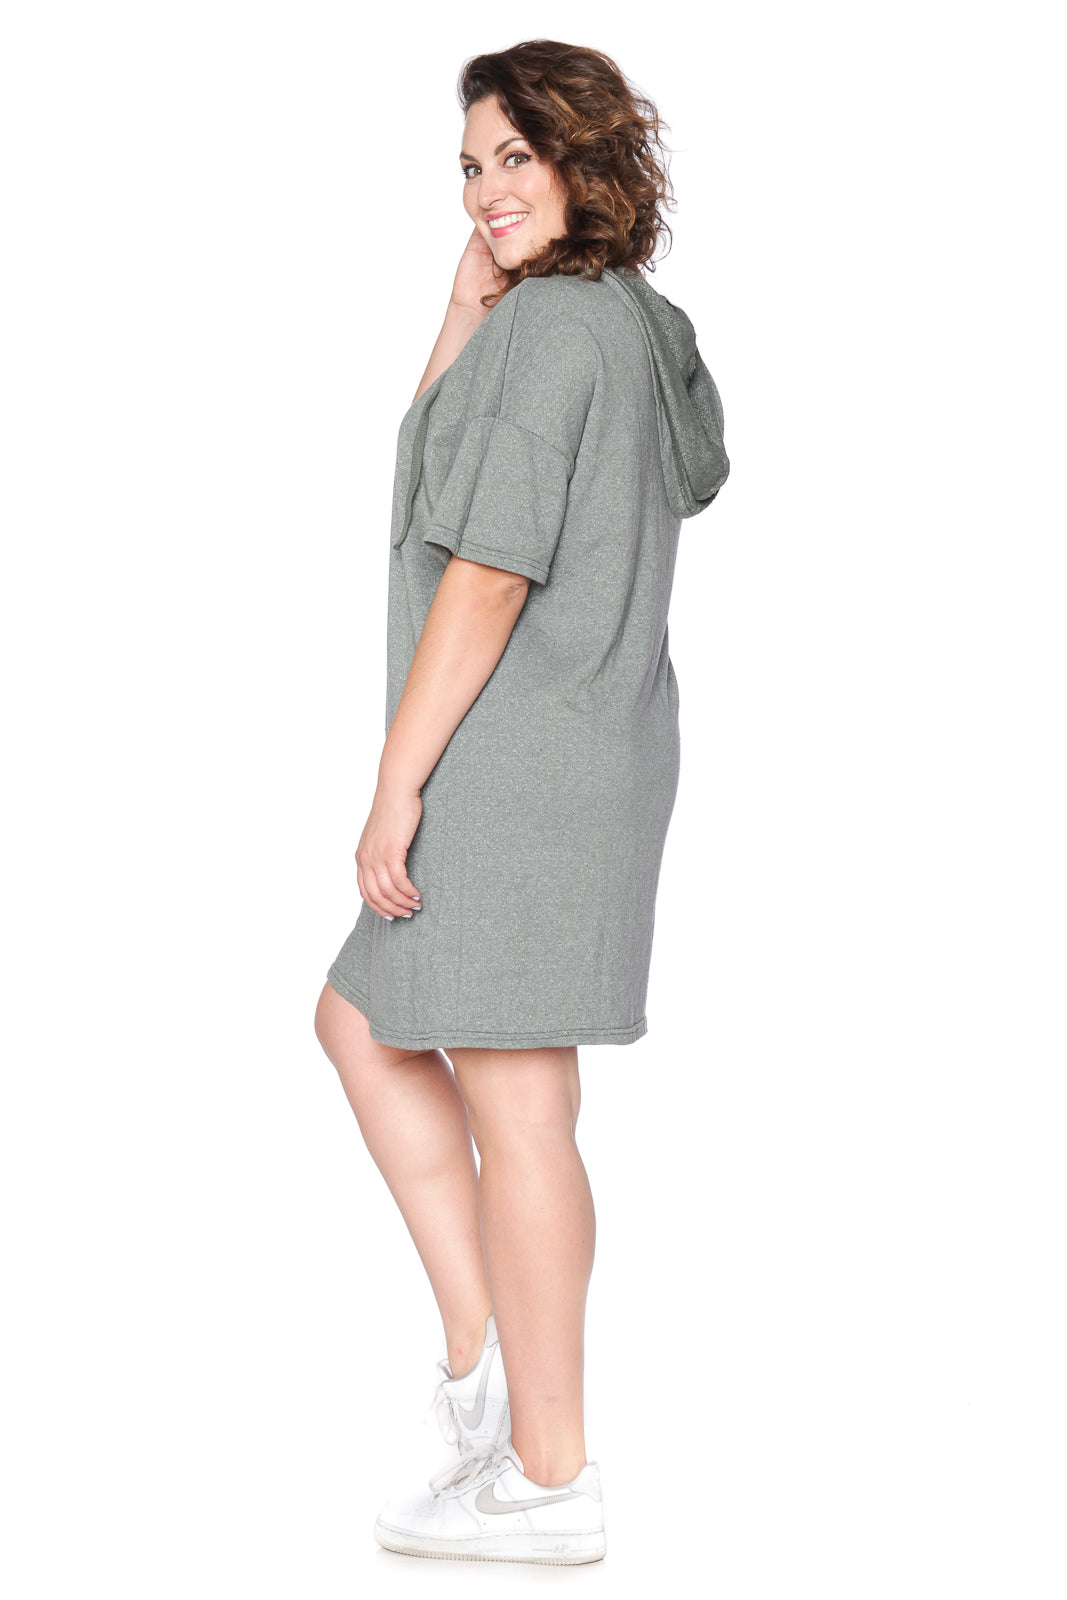 Lace Up Hoodie Dress - OLIVE